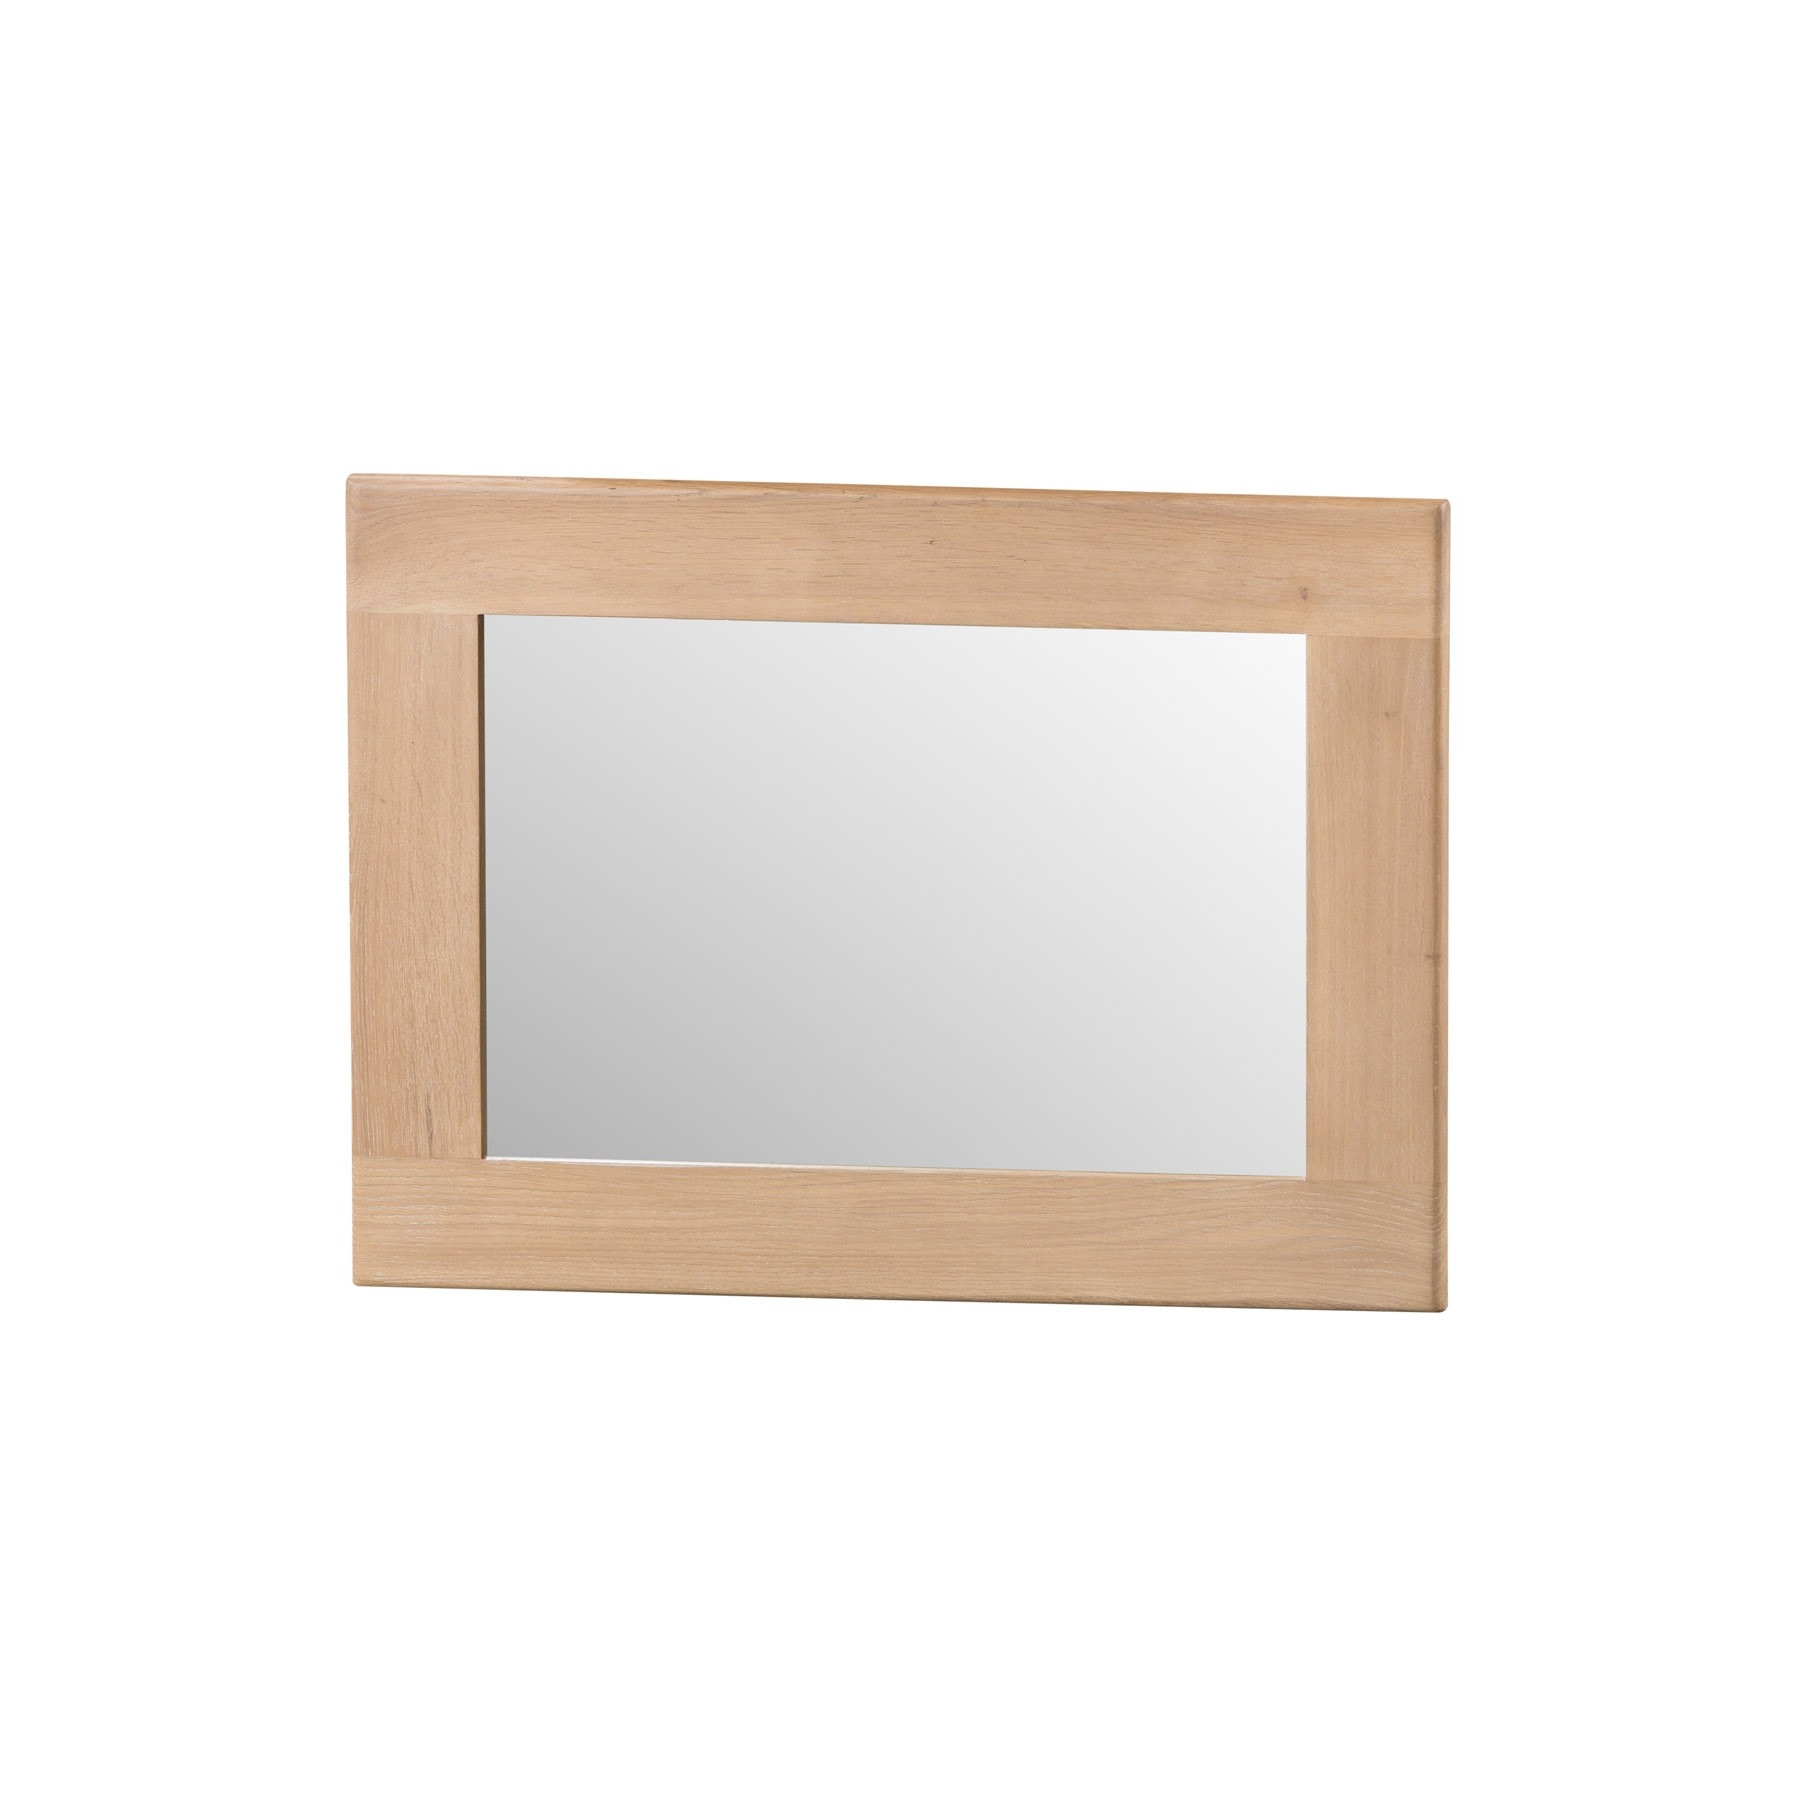 2020 Small Wall Mirrors Intended For Lombardy Oak Small Wall Mirror (View 18 of 20)